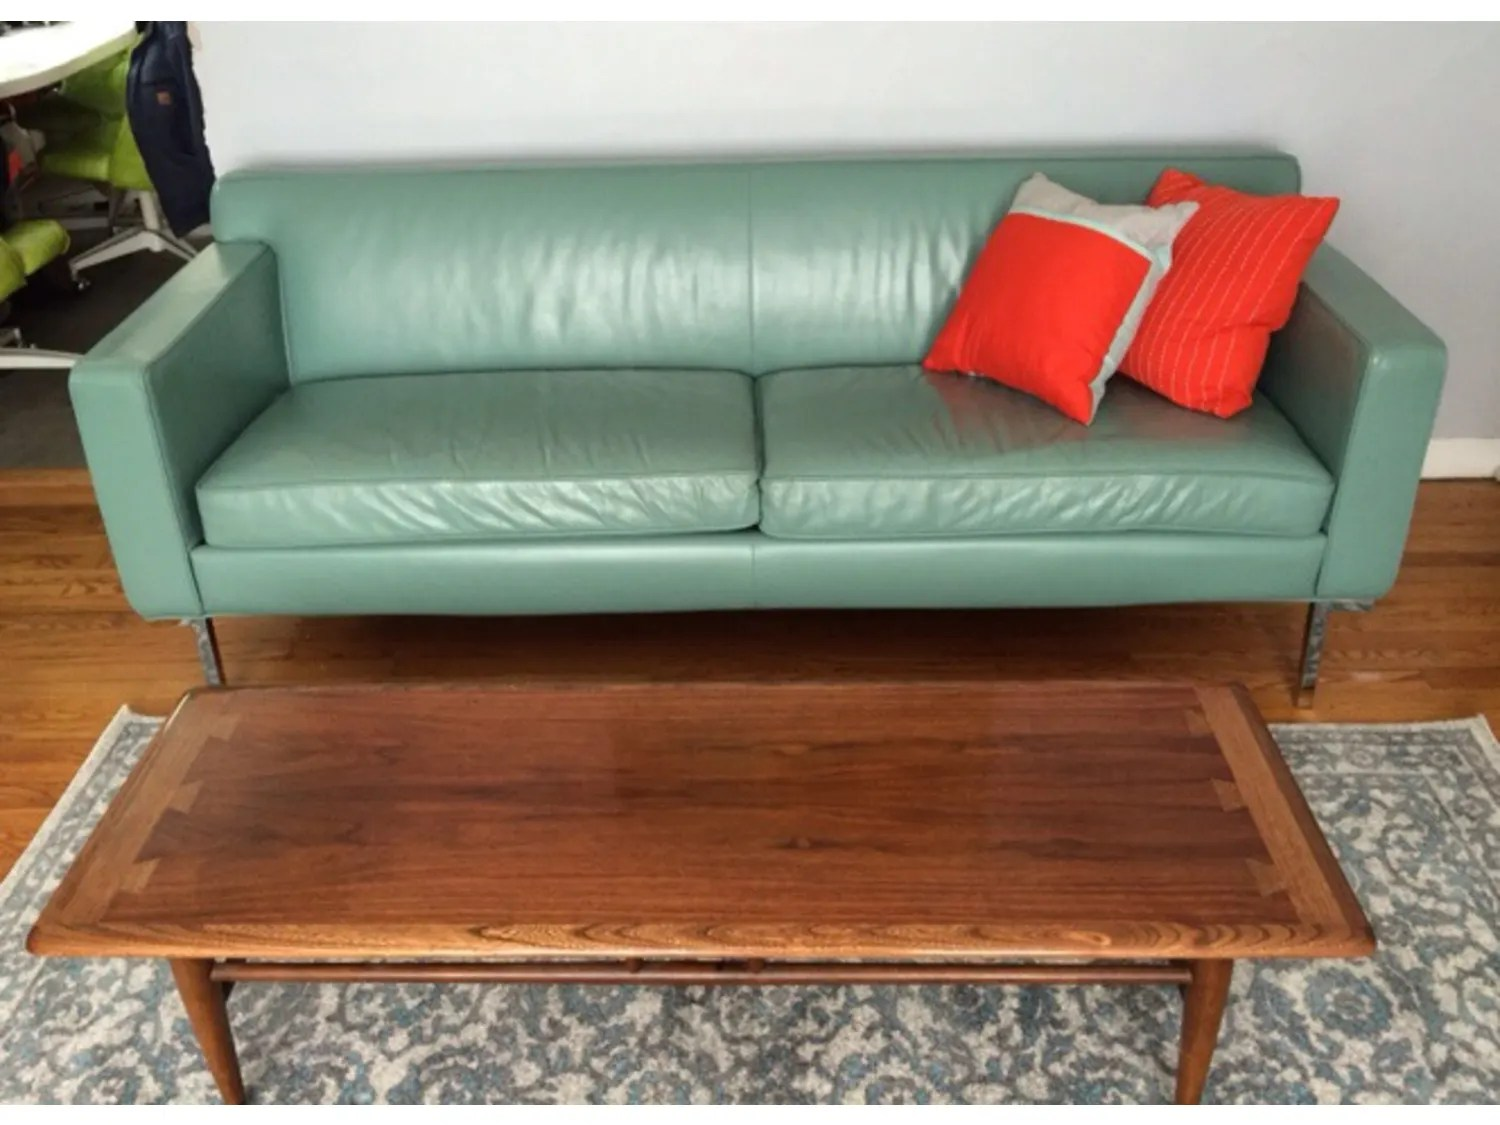 dwr theatre sofa review grey covers uk leather in powder blue apartment therapy s bazaar